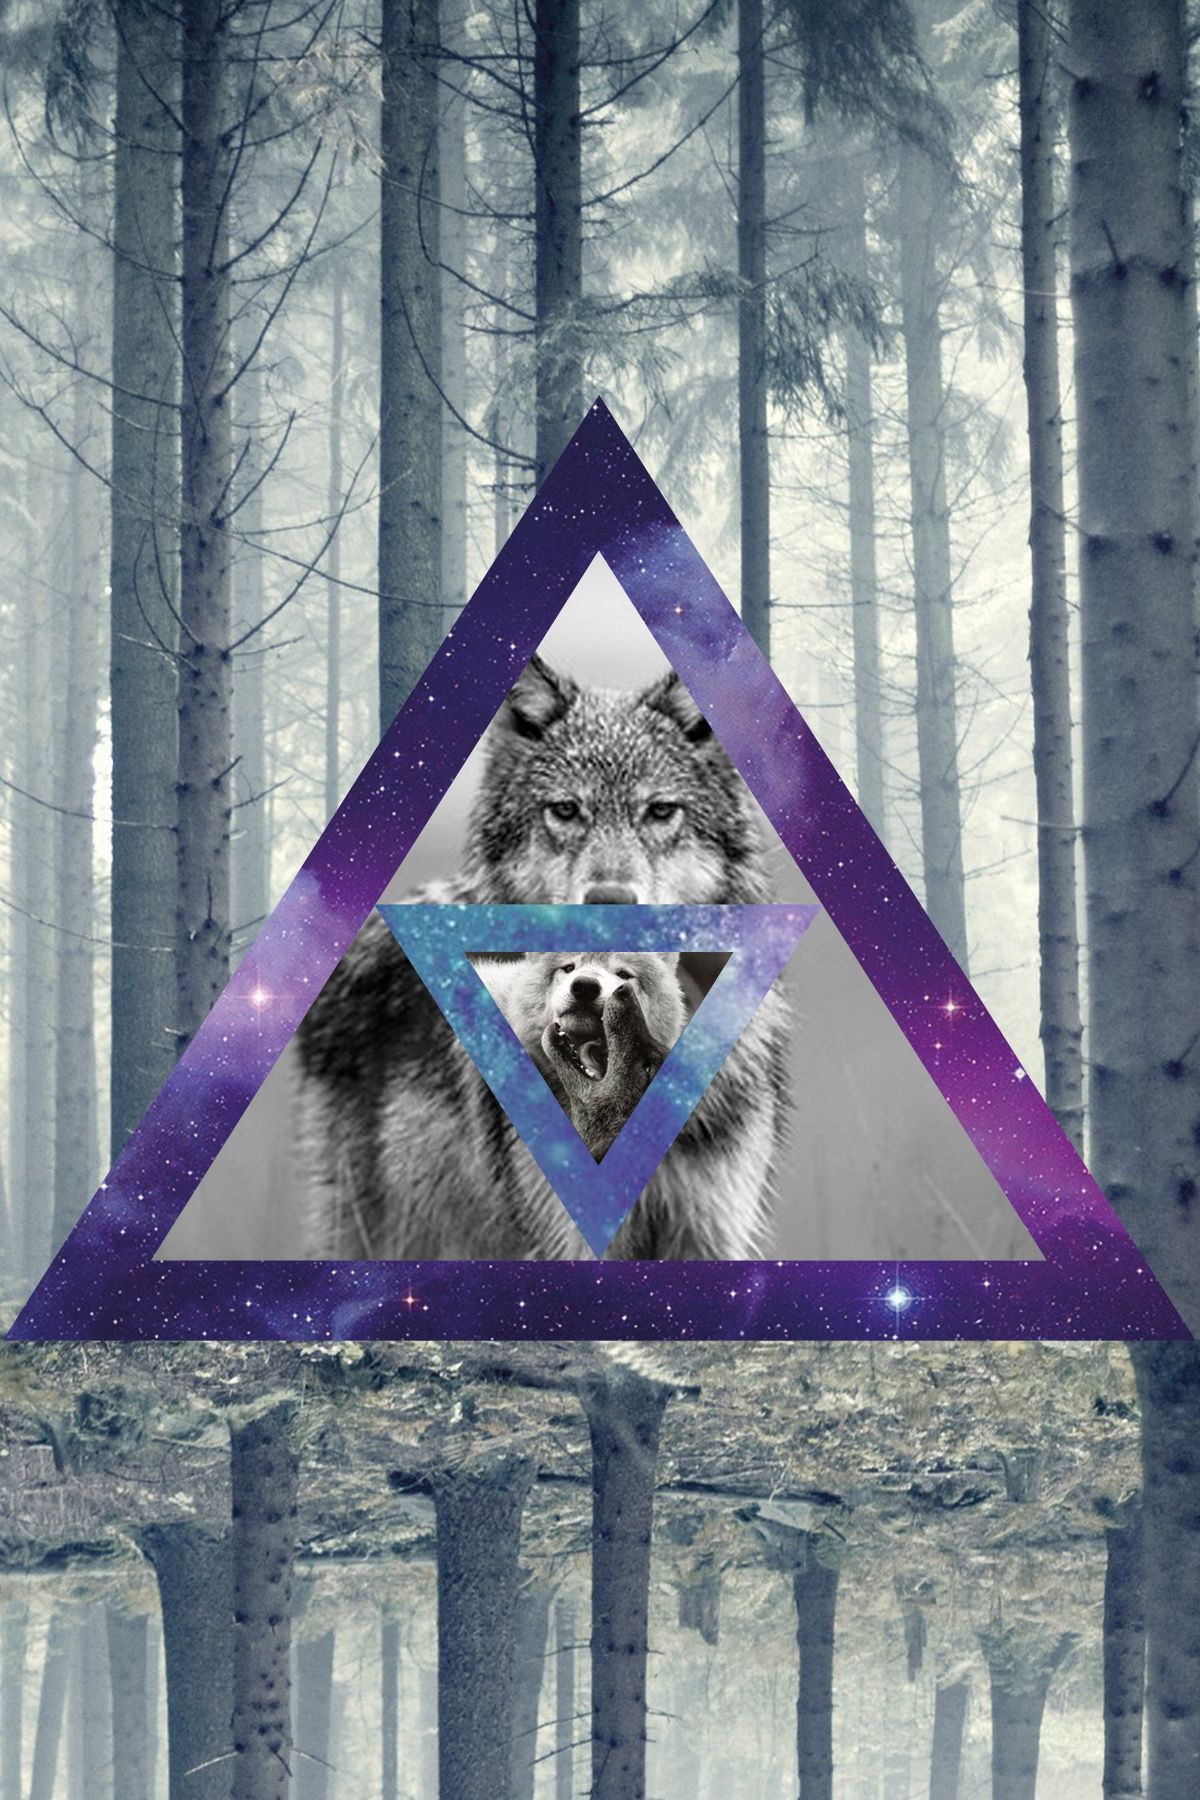 1200x1800 wolf #hipster #triangles #wood #woods #galaxy #galaxies | My Style ...